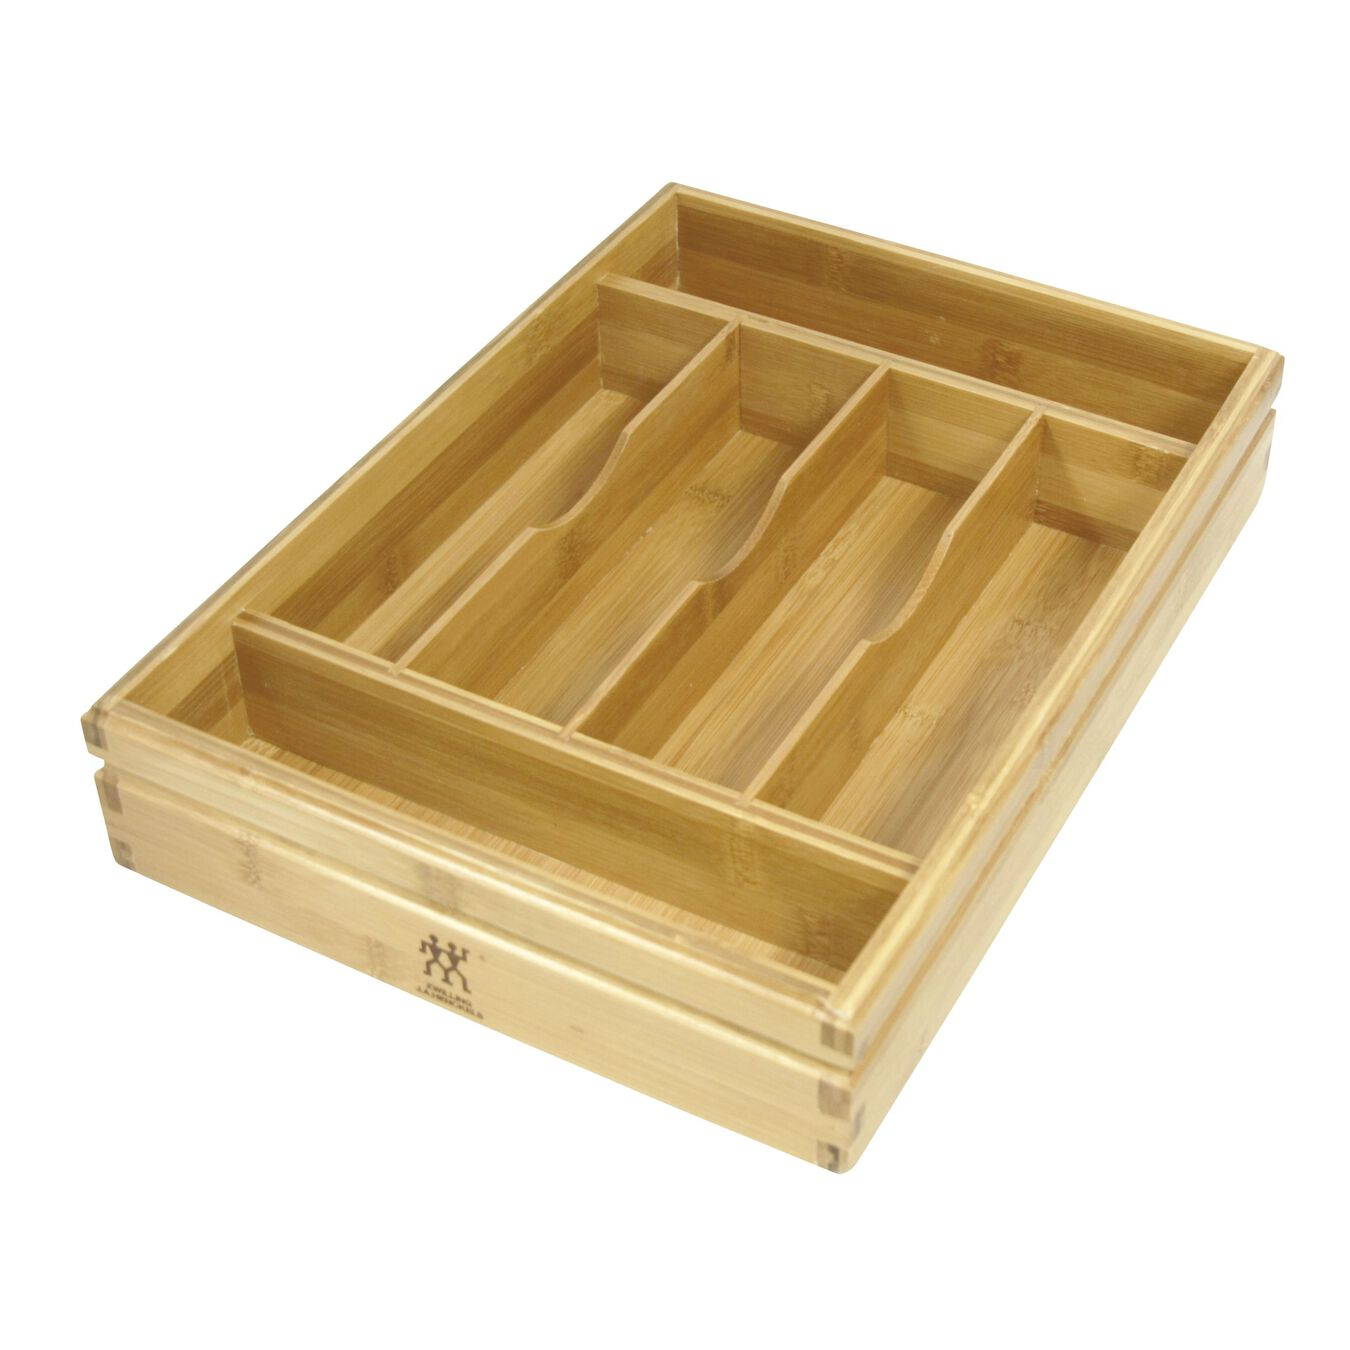 Bamboo Flatware Storage Tray,,large 1